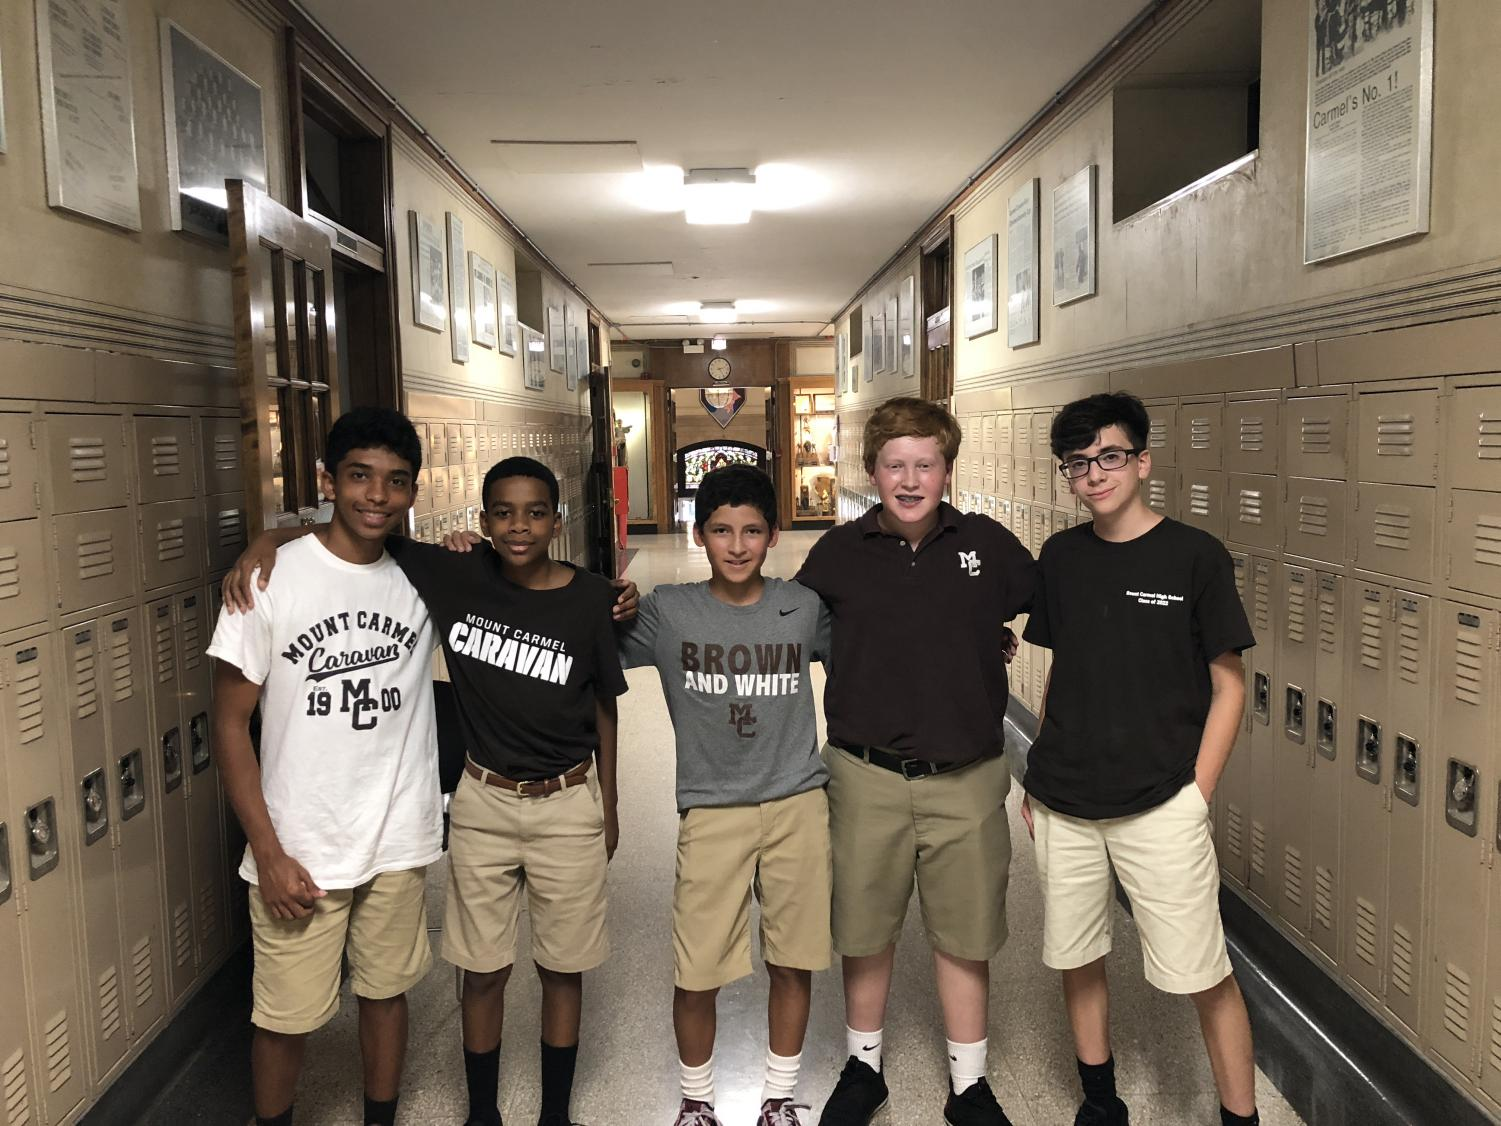 Carlos Banks (St. Therese), Justin Carney (St. Thomas of the Apostle), Robert Bonilla (Queen of Martyrs), Joe Bird (St. Catherine of Alexandra), Noah Sanchez (St. Thomas More, IN) are among a diverse group of freshmen beginning their journey to become Men of Carmel.